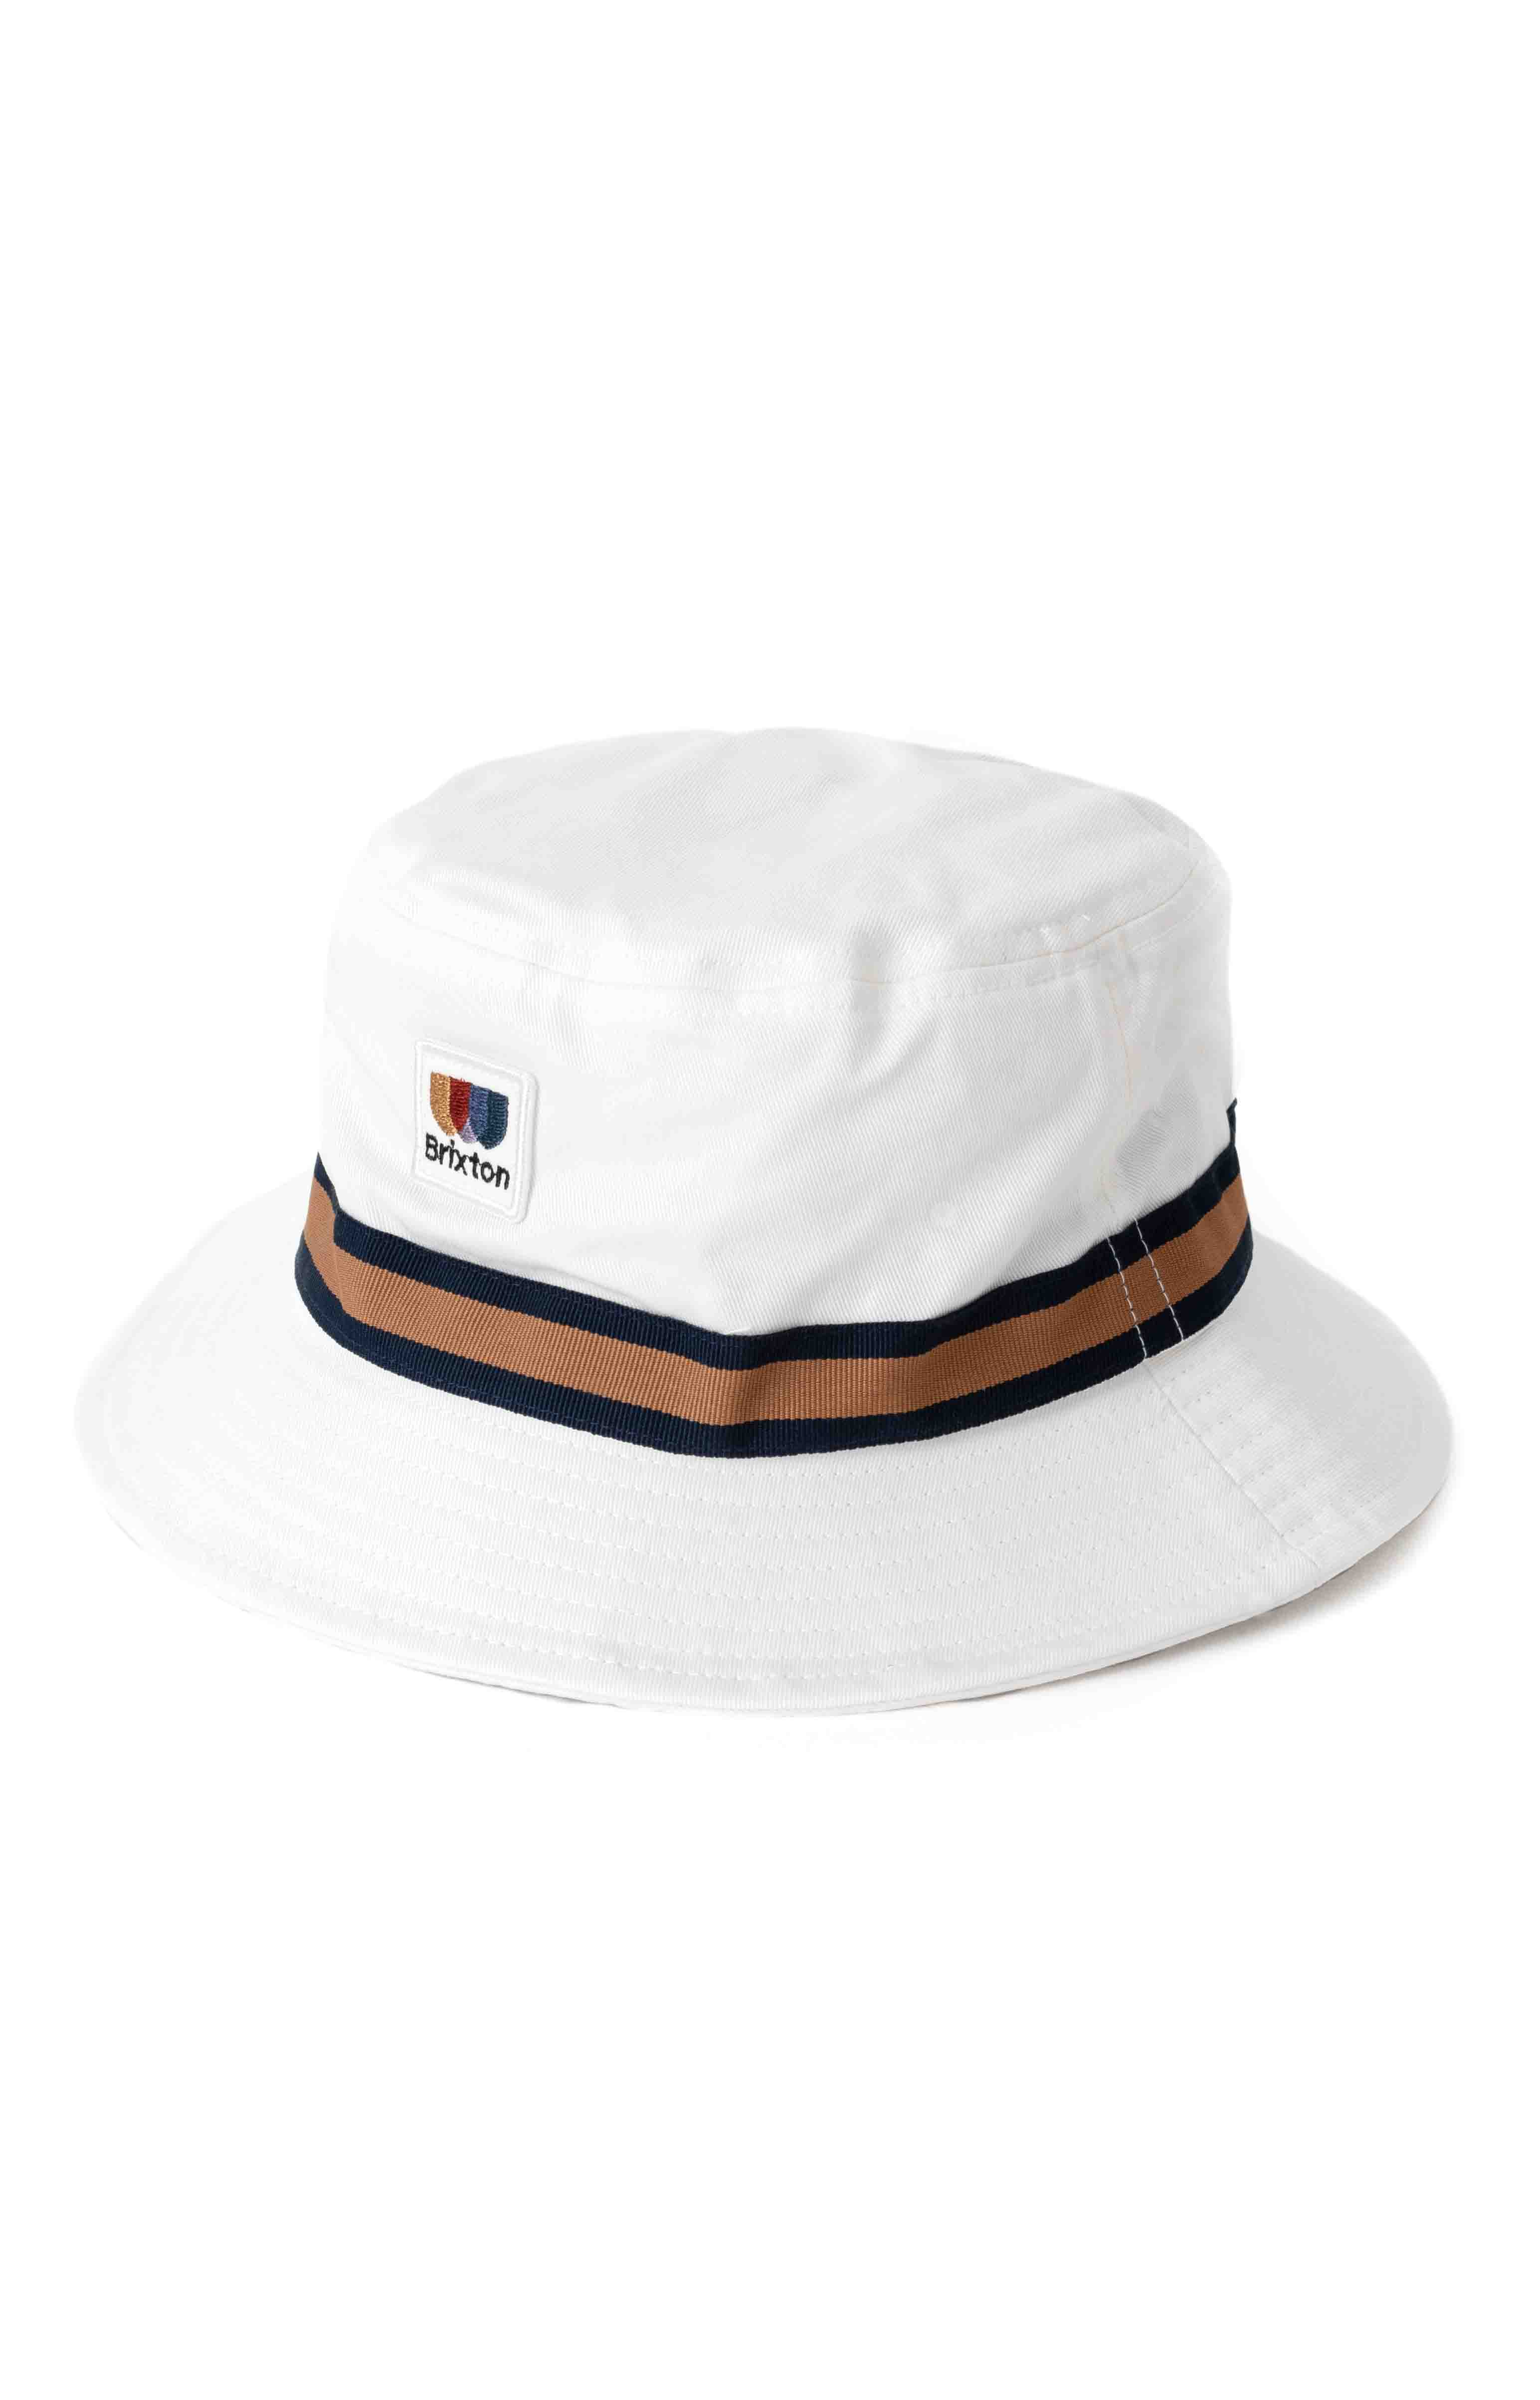 Alton Packable Bucket Hat - Off White/Washed Navy